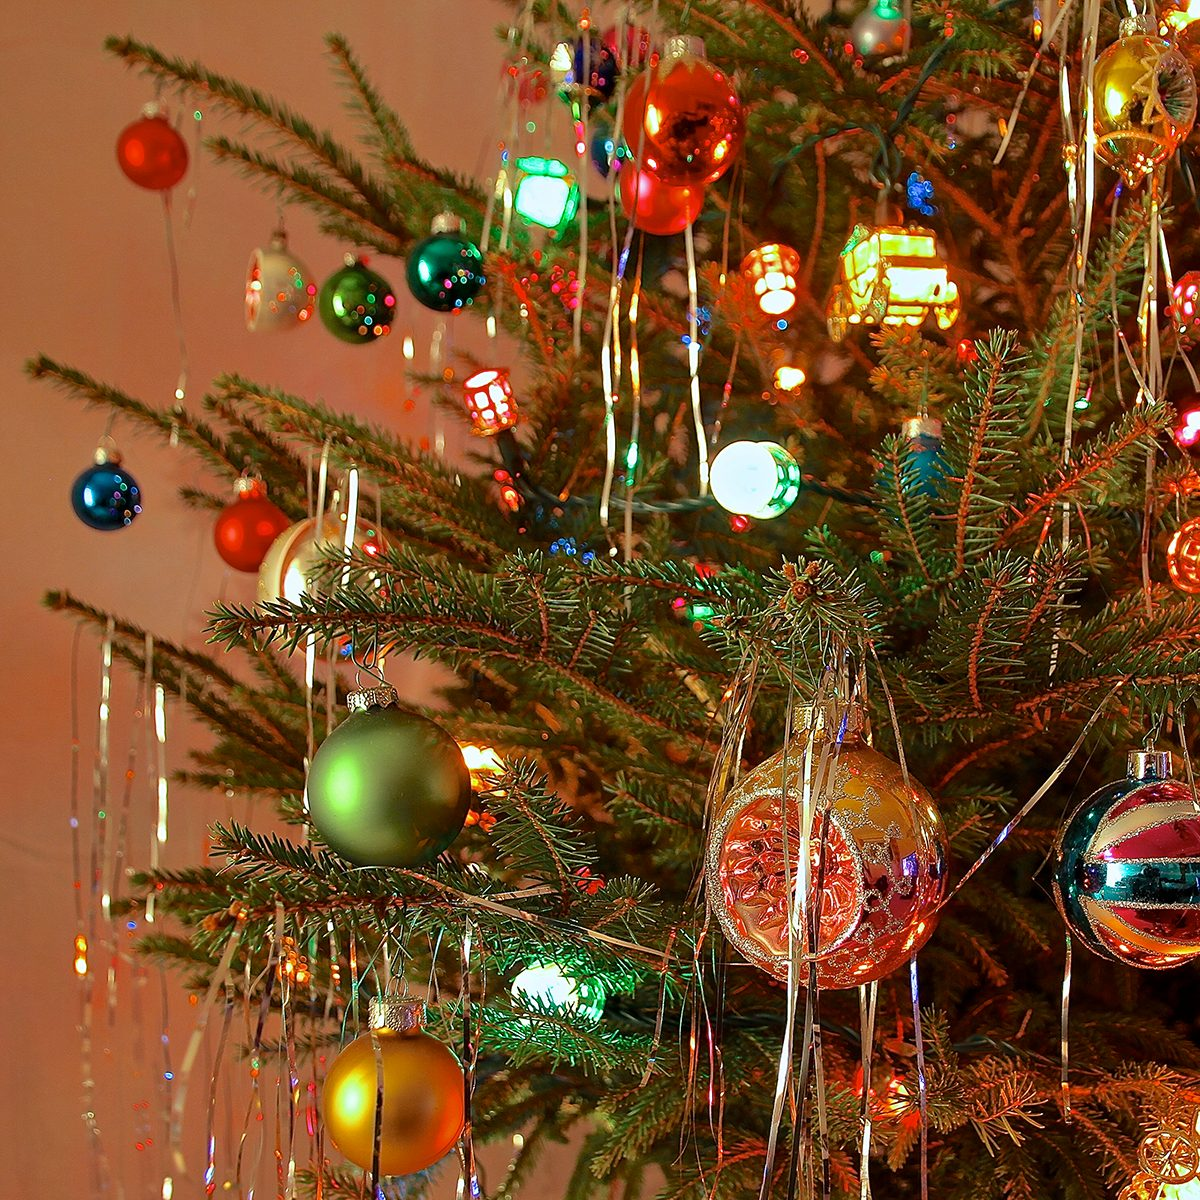 Close up of Christmas Tree decorated with antique glass baubles and coloured lights in kitsch retro 70s style